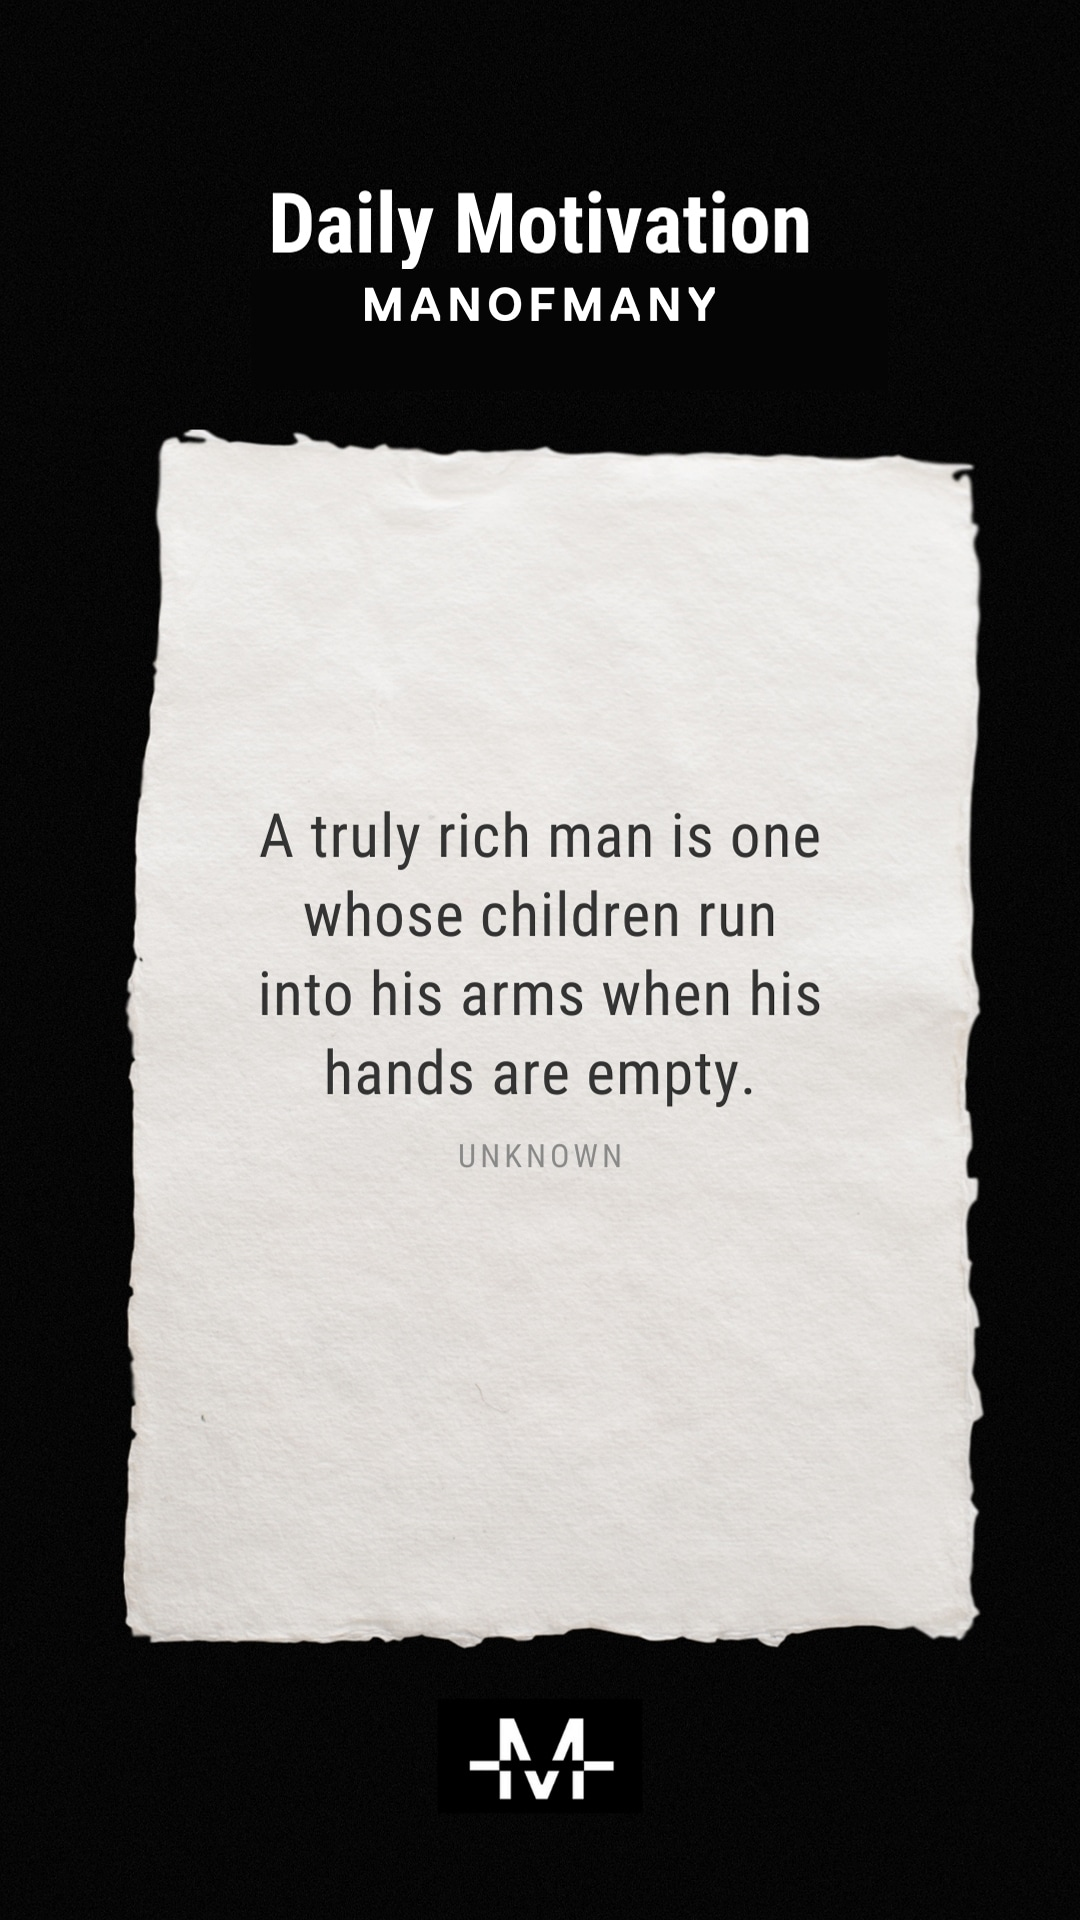 A truly rich man is one whose children run into his arms when his hands are empty. –Unknown quote